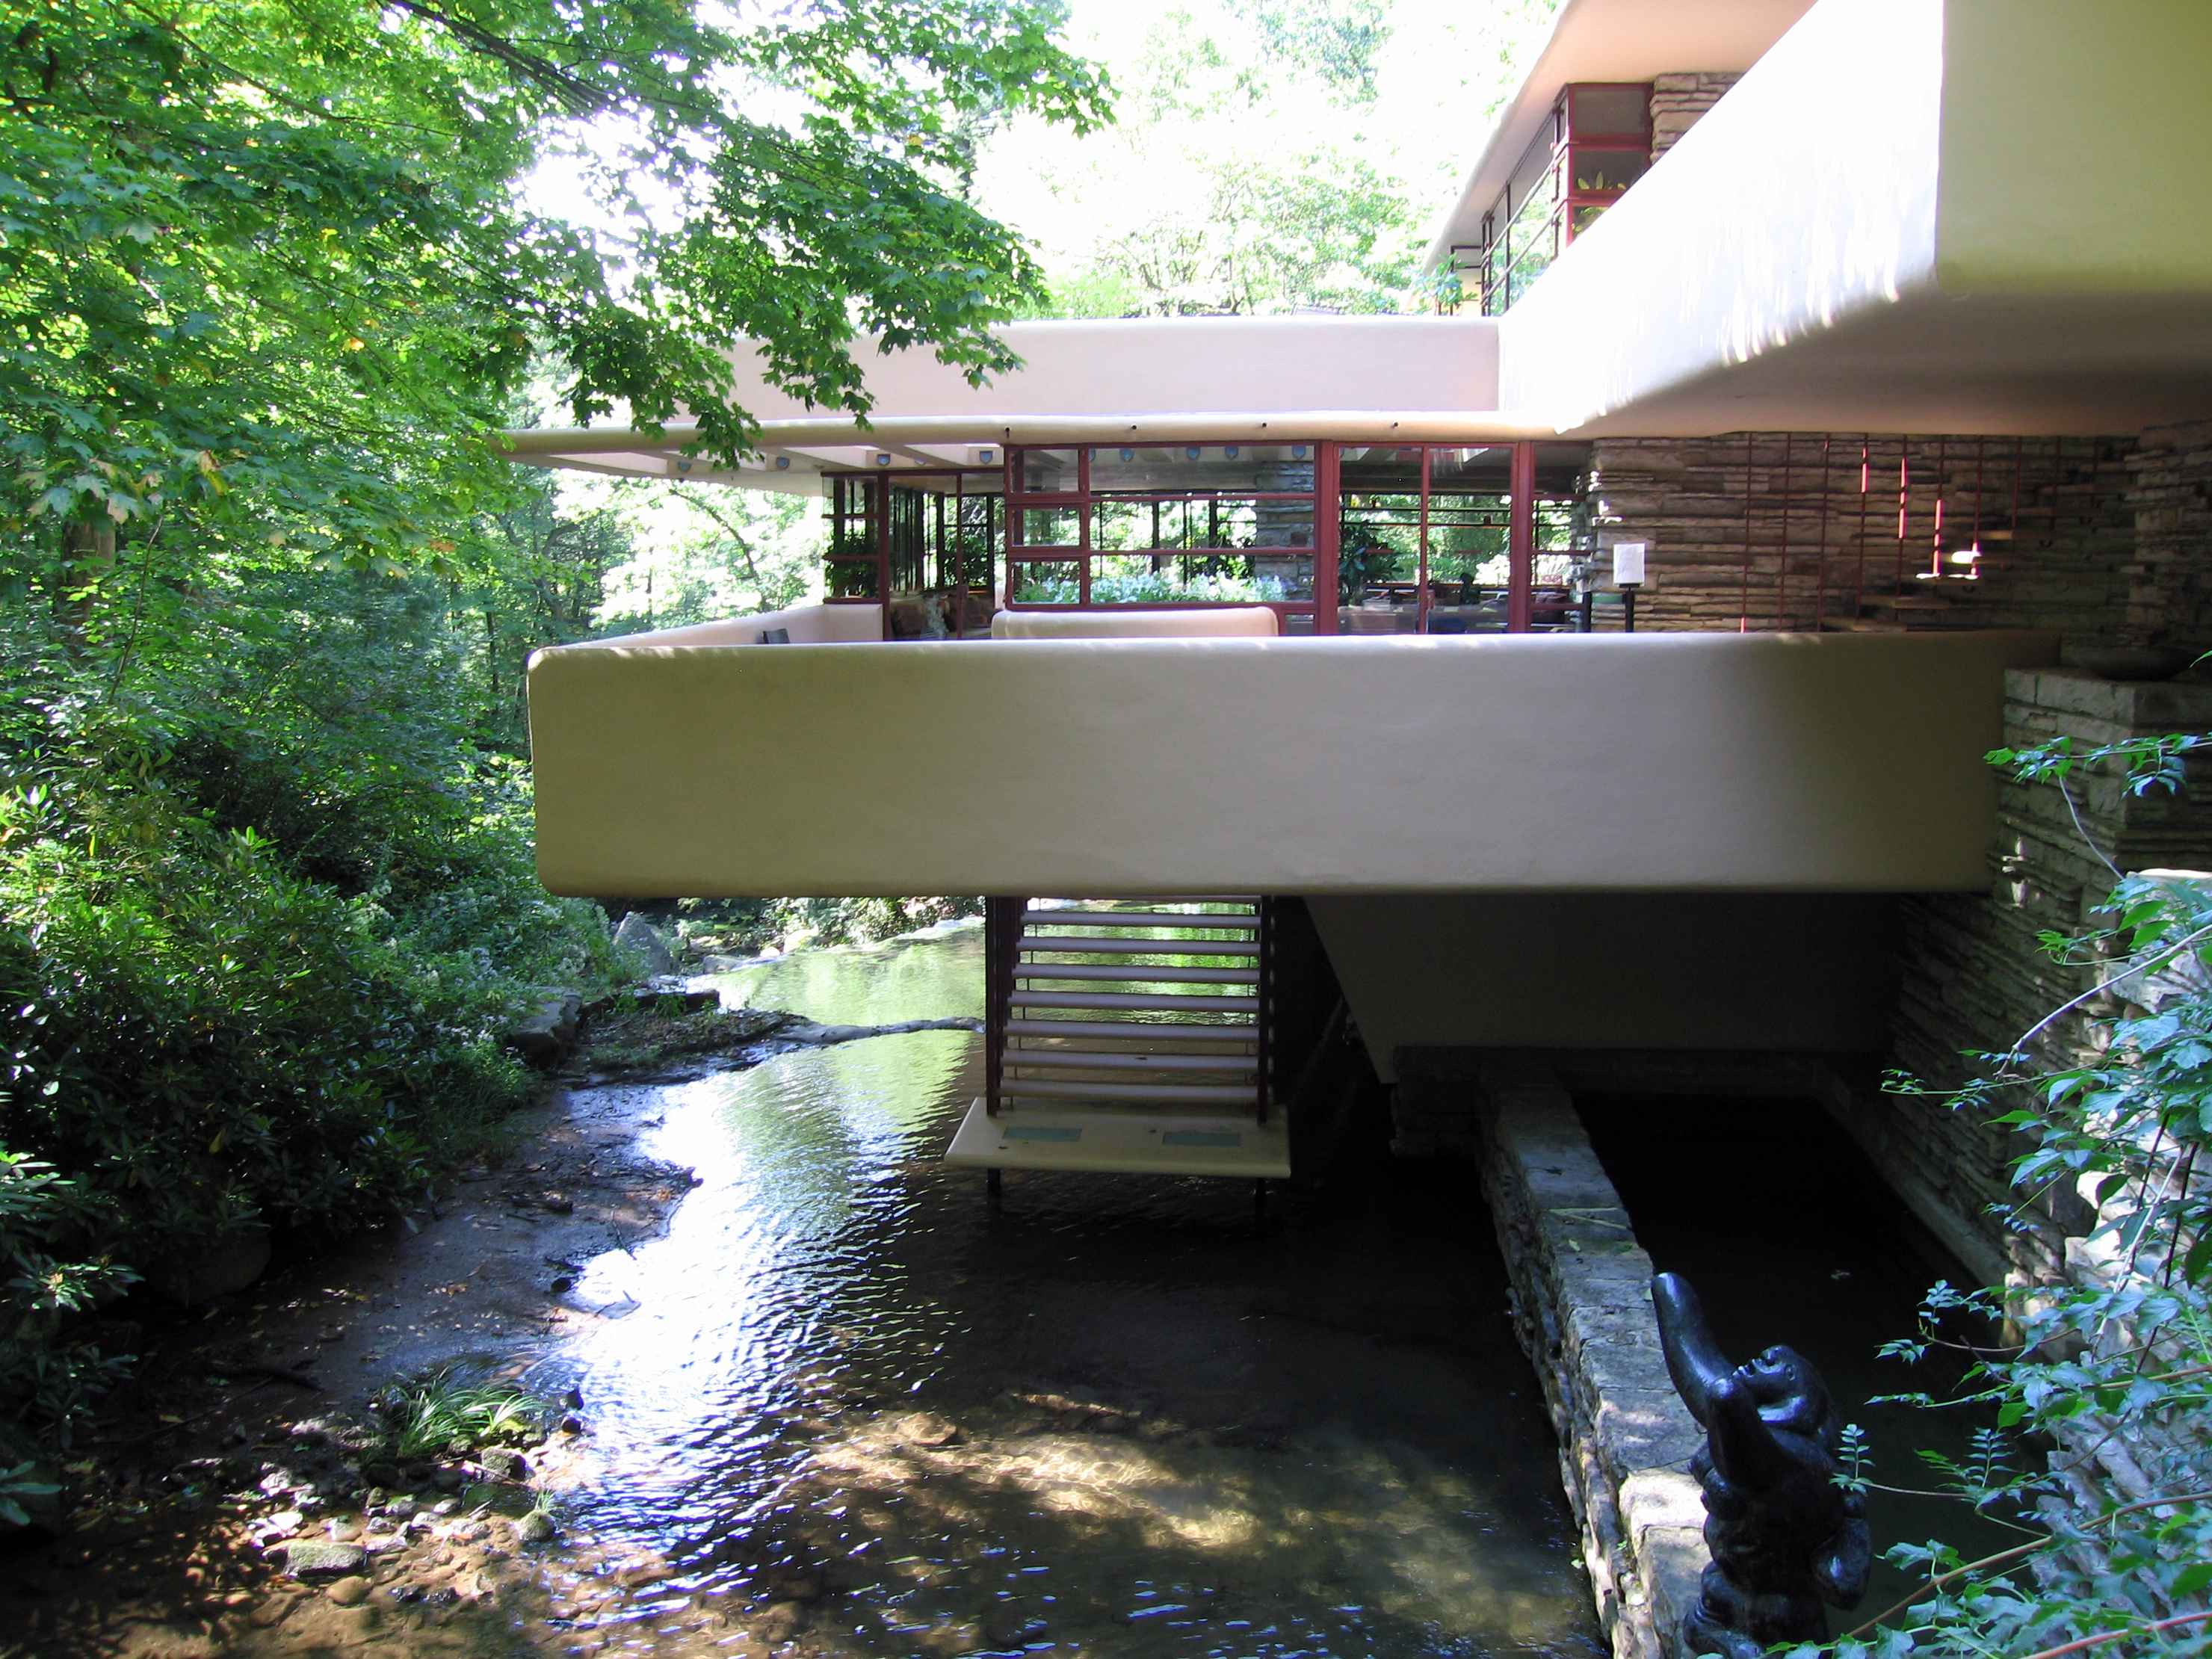 802540 as well Mid Century Modern Icons Falling Water House Frank Lloyd Wright additionally Floor Plans Elevations further 892600 additionally Falling Water 55744002. on frank lloyd wright falling water house plans